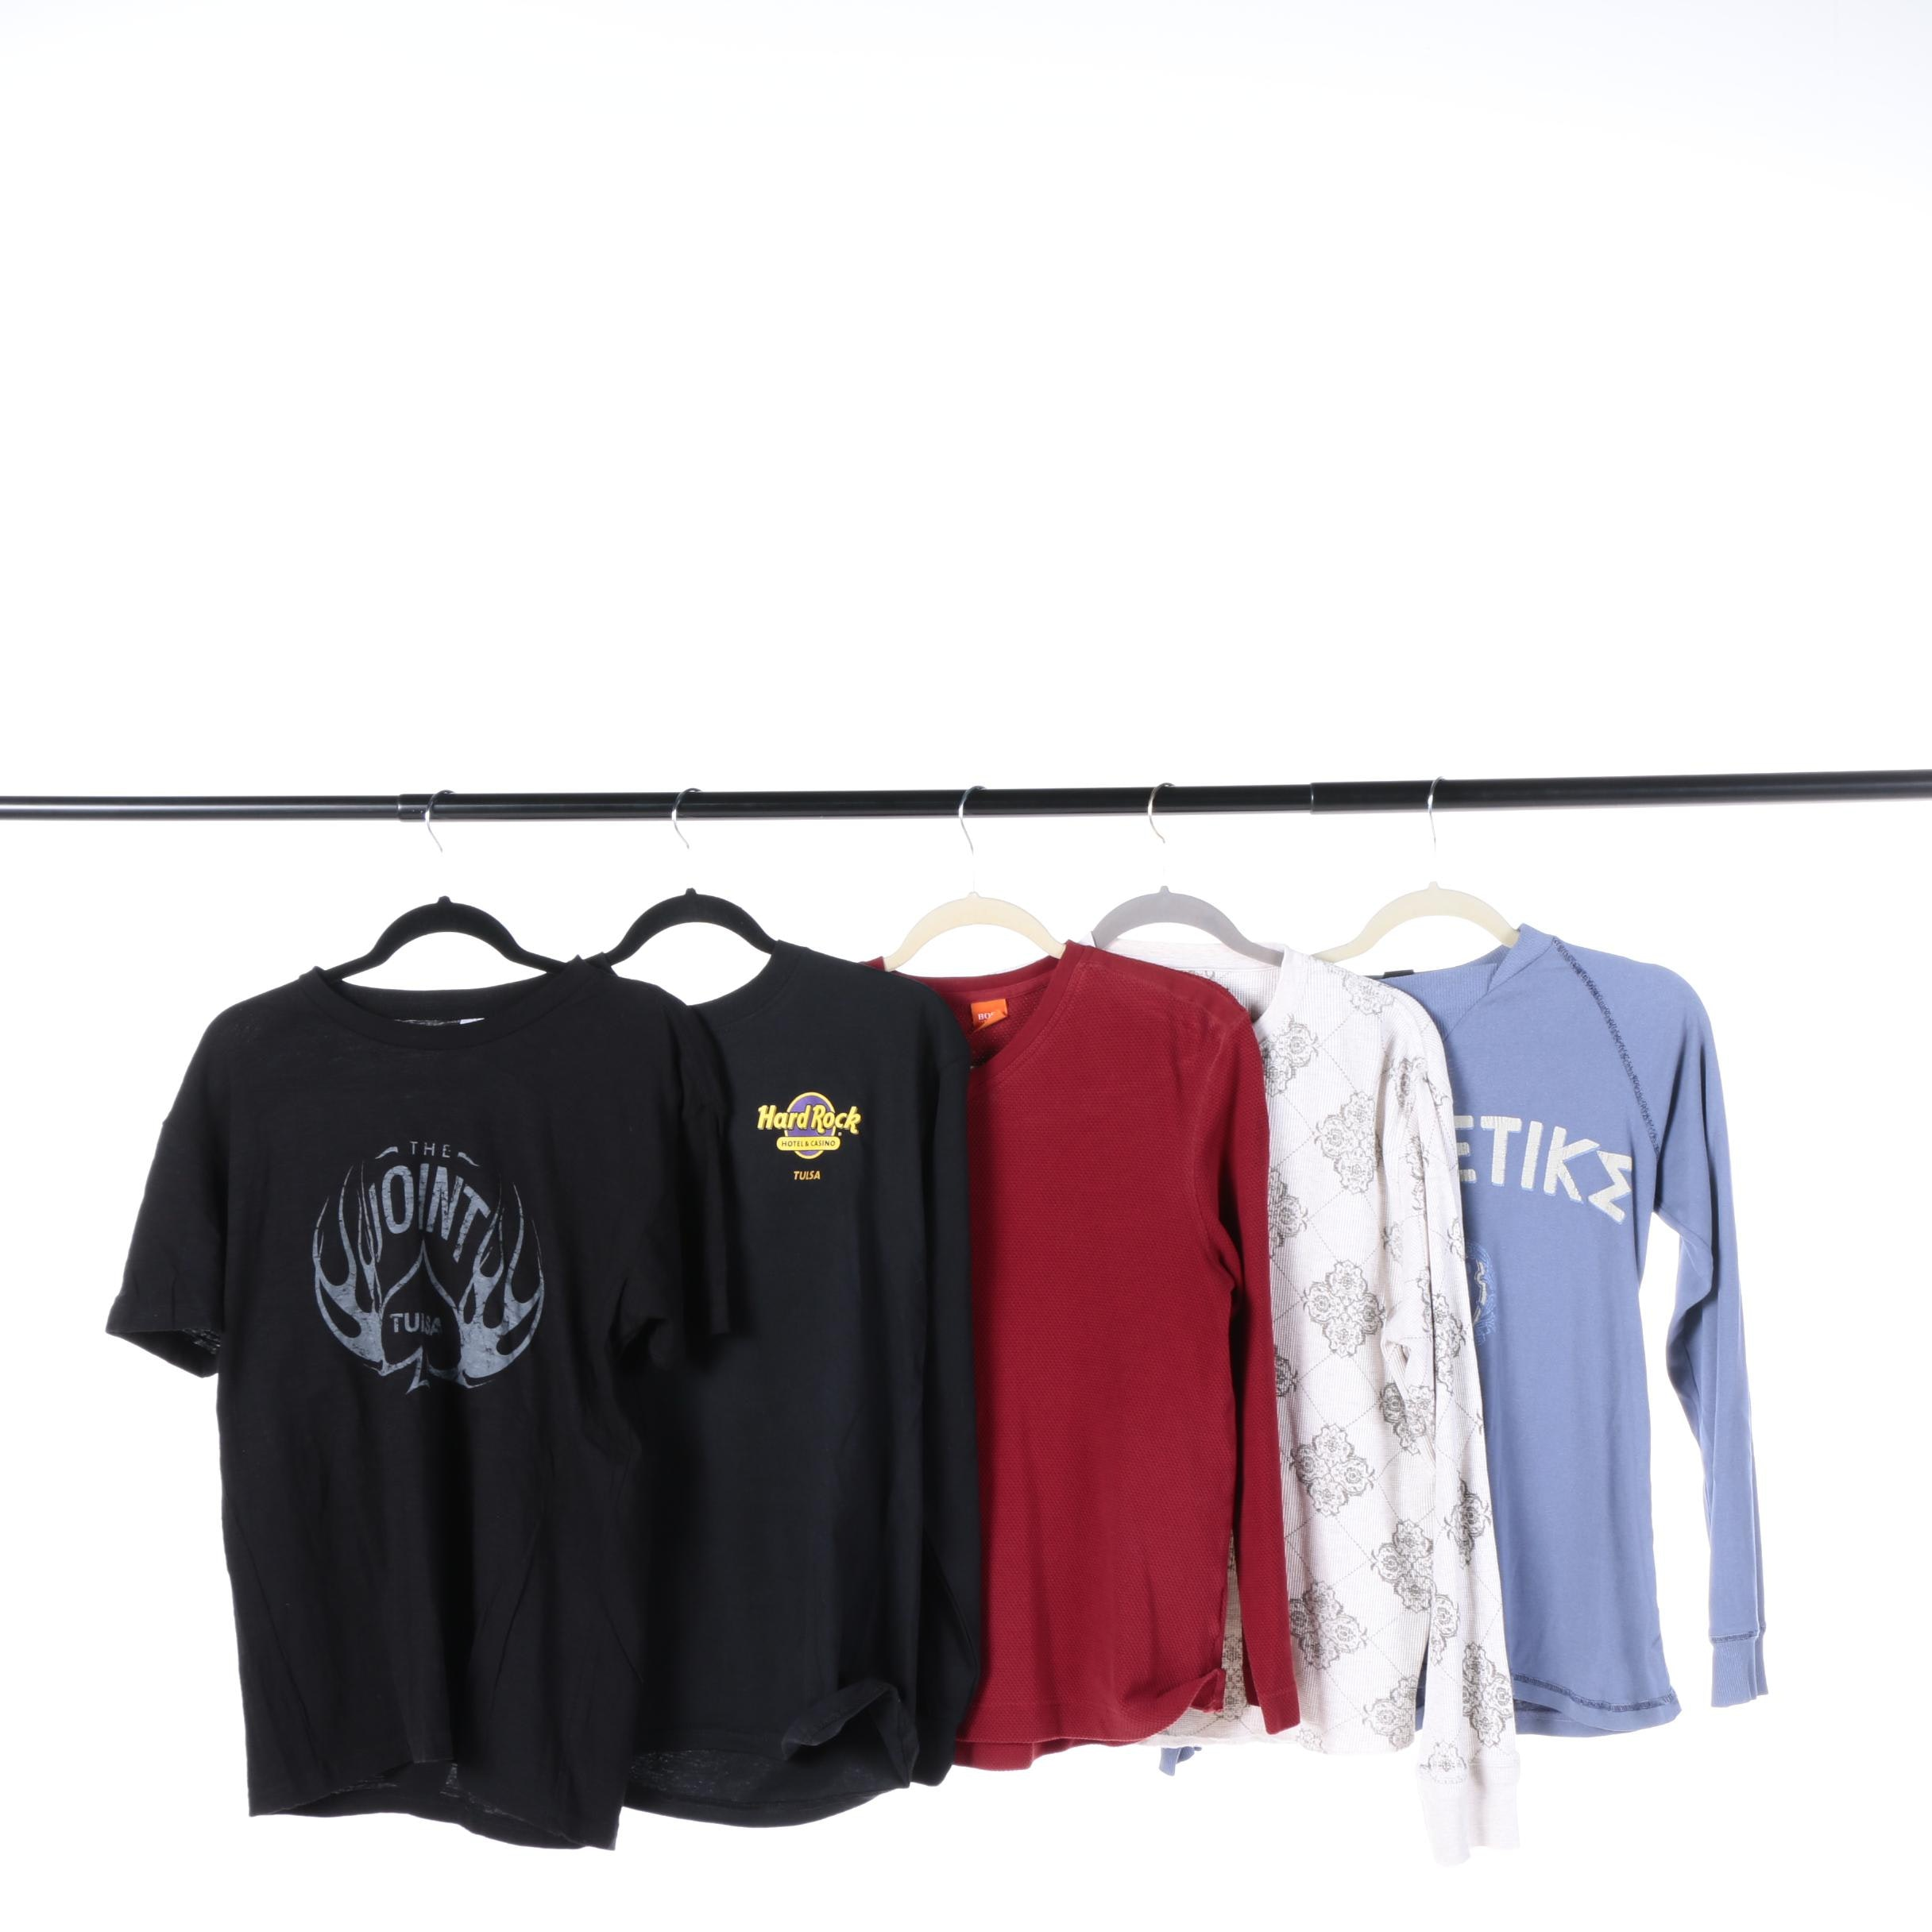 Men's Short and Long Sleeve T-Shirts Including Diesel and Marc Ecko